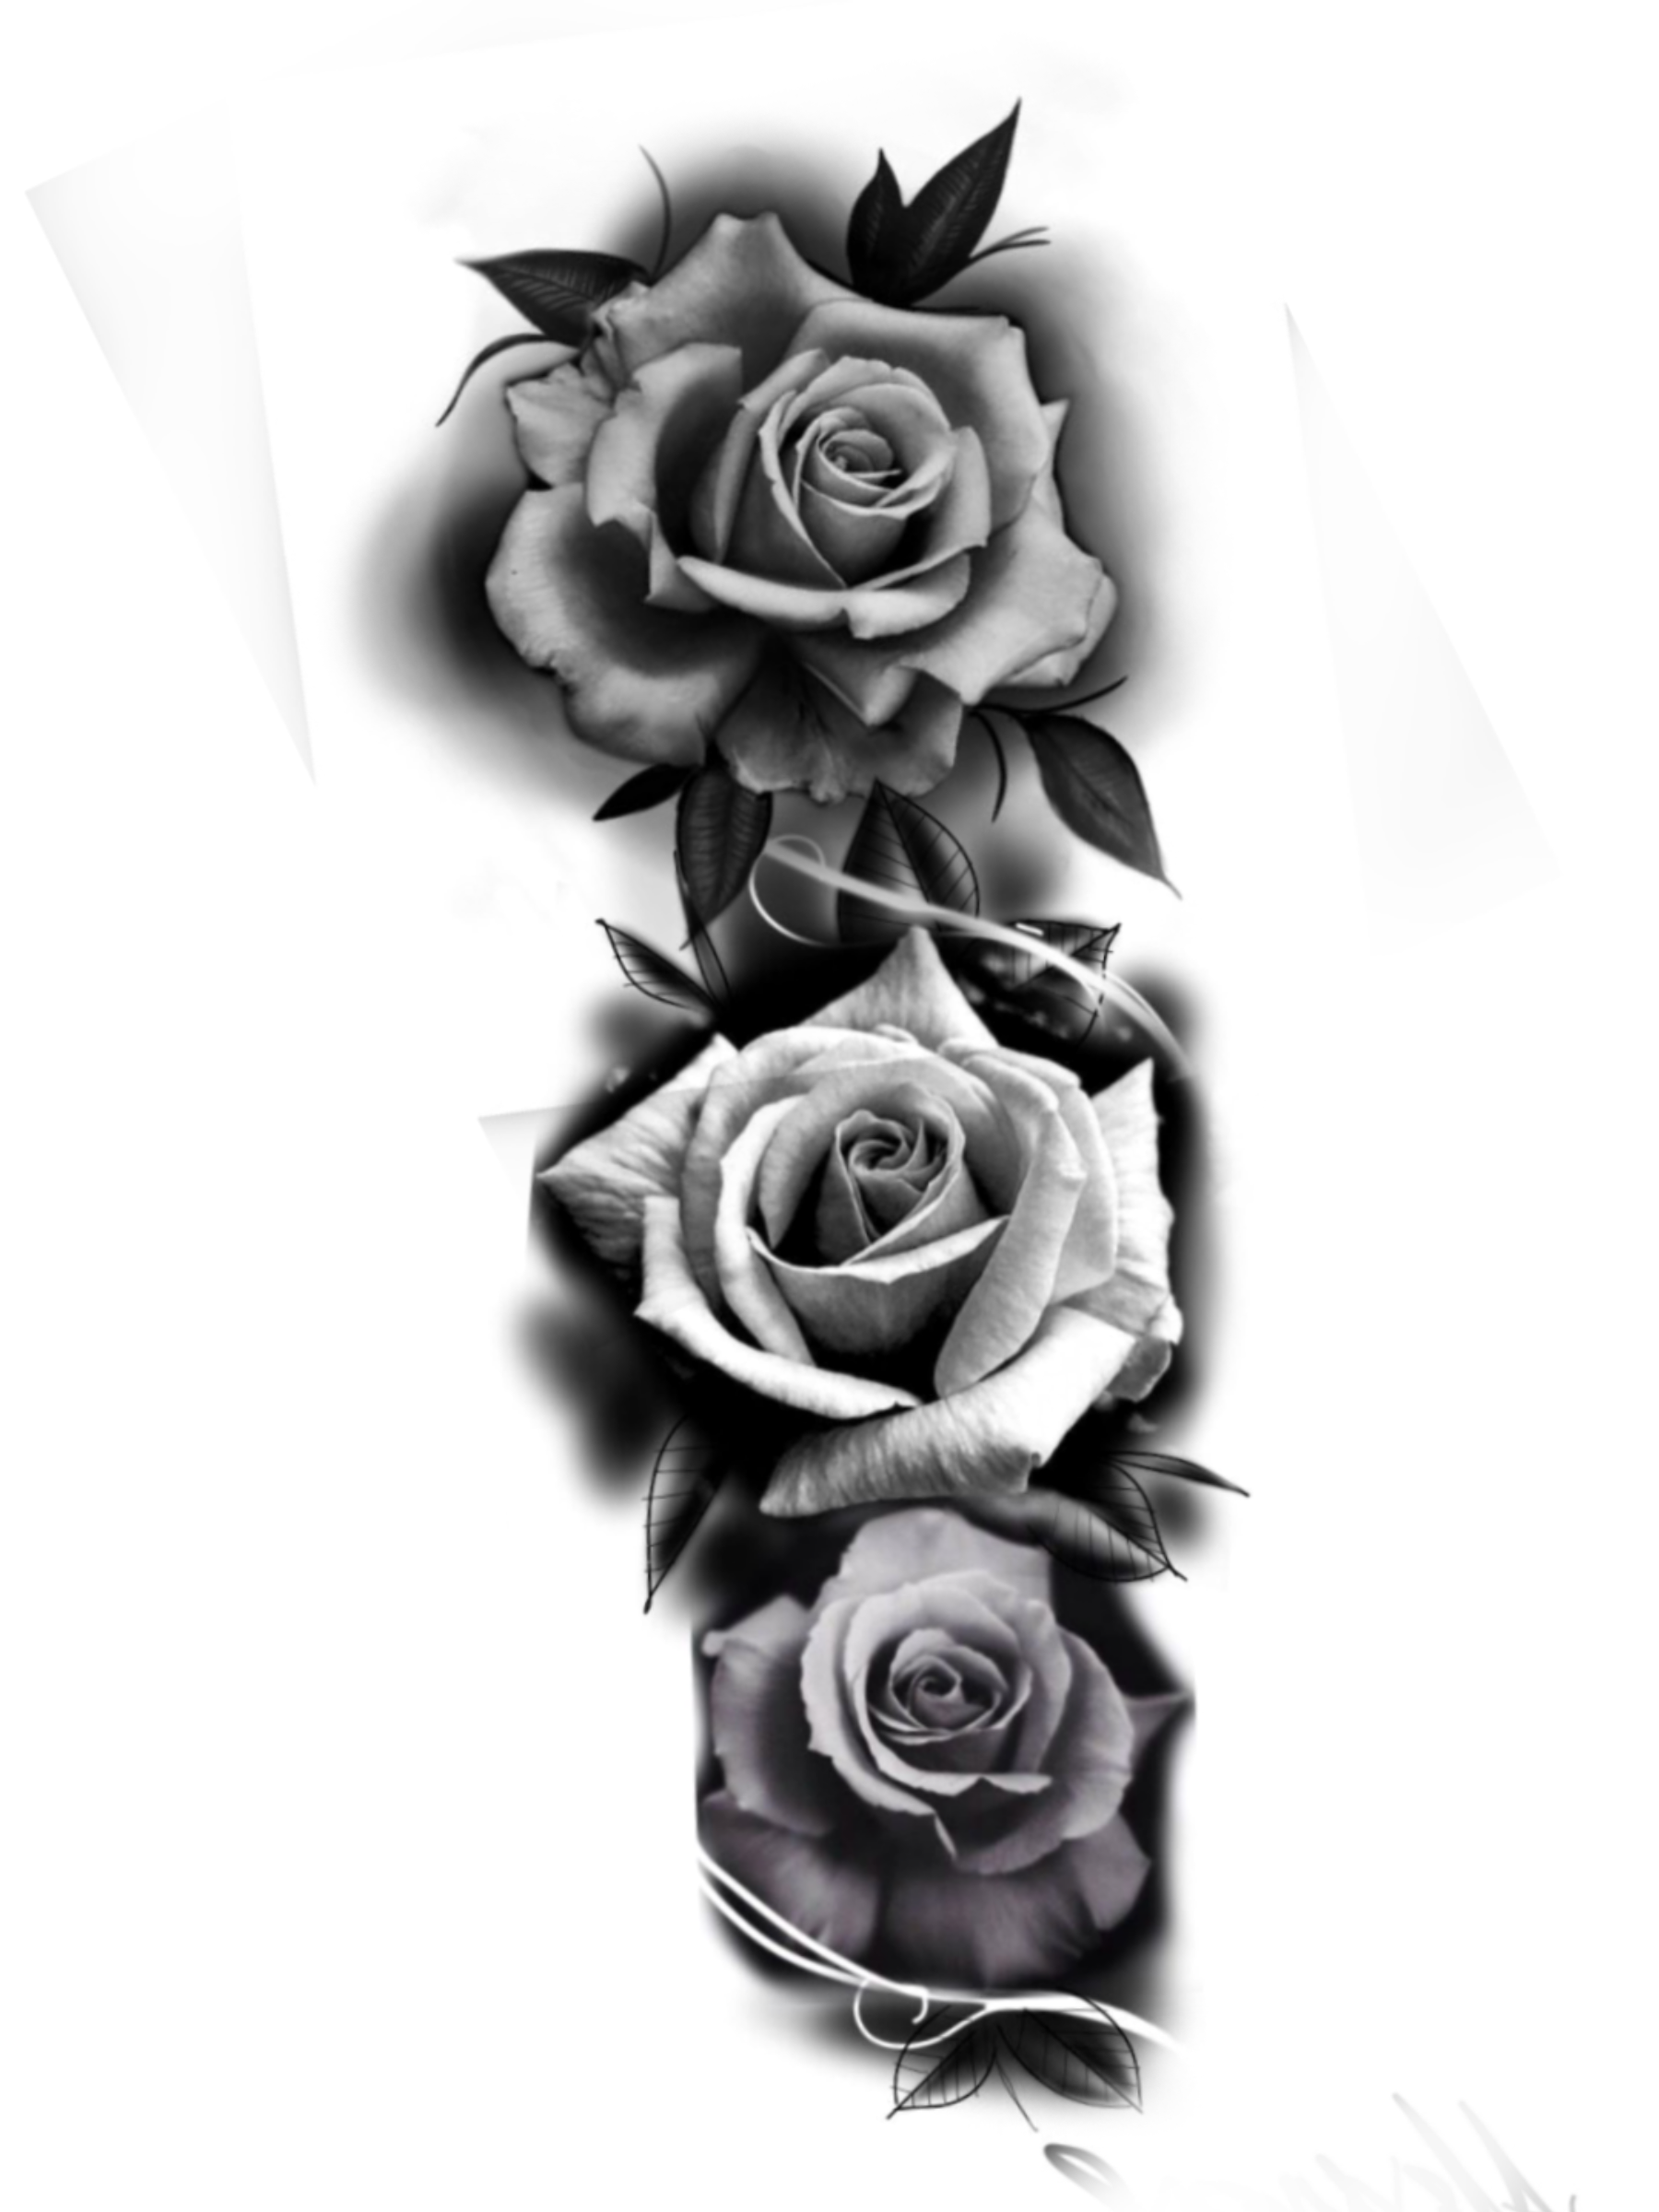 Pin By Juan Guillermo Curz Vanegas On Dogs Rose Tattoos For Men Rose Tattoo Sleeve Rose Drawing Tattoo